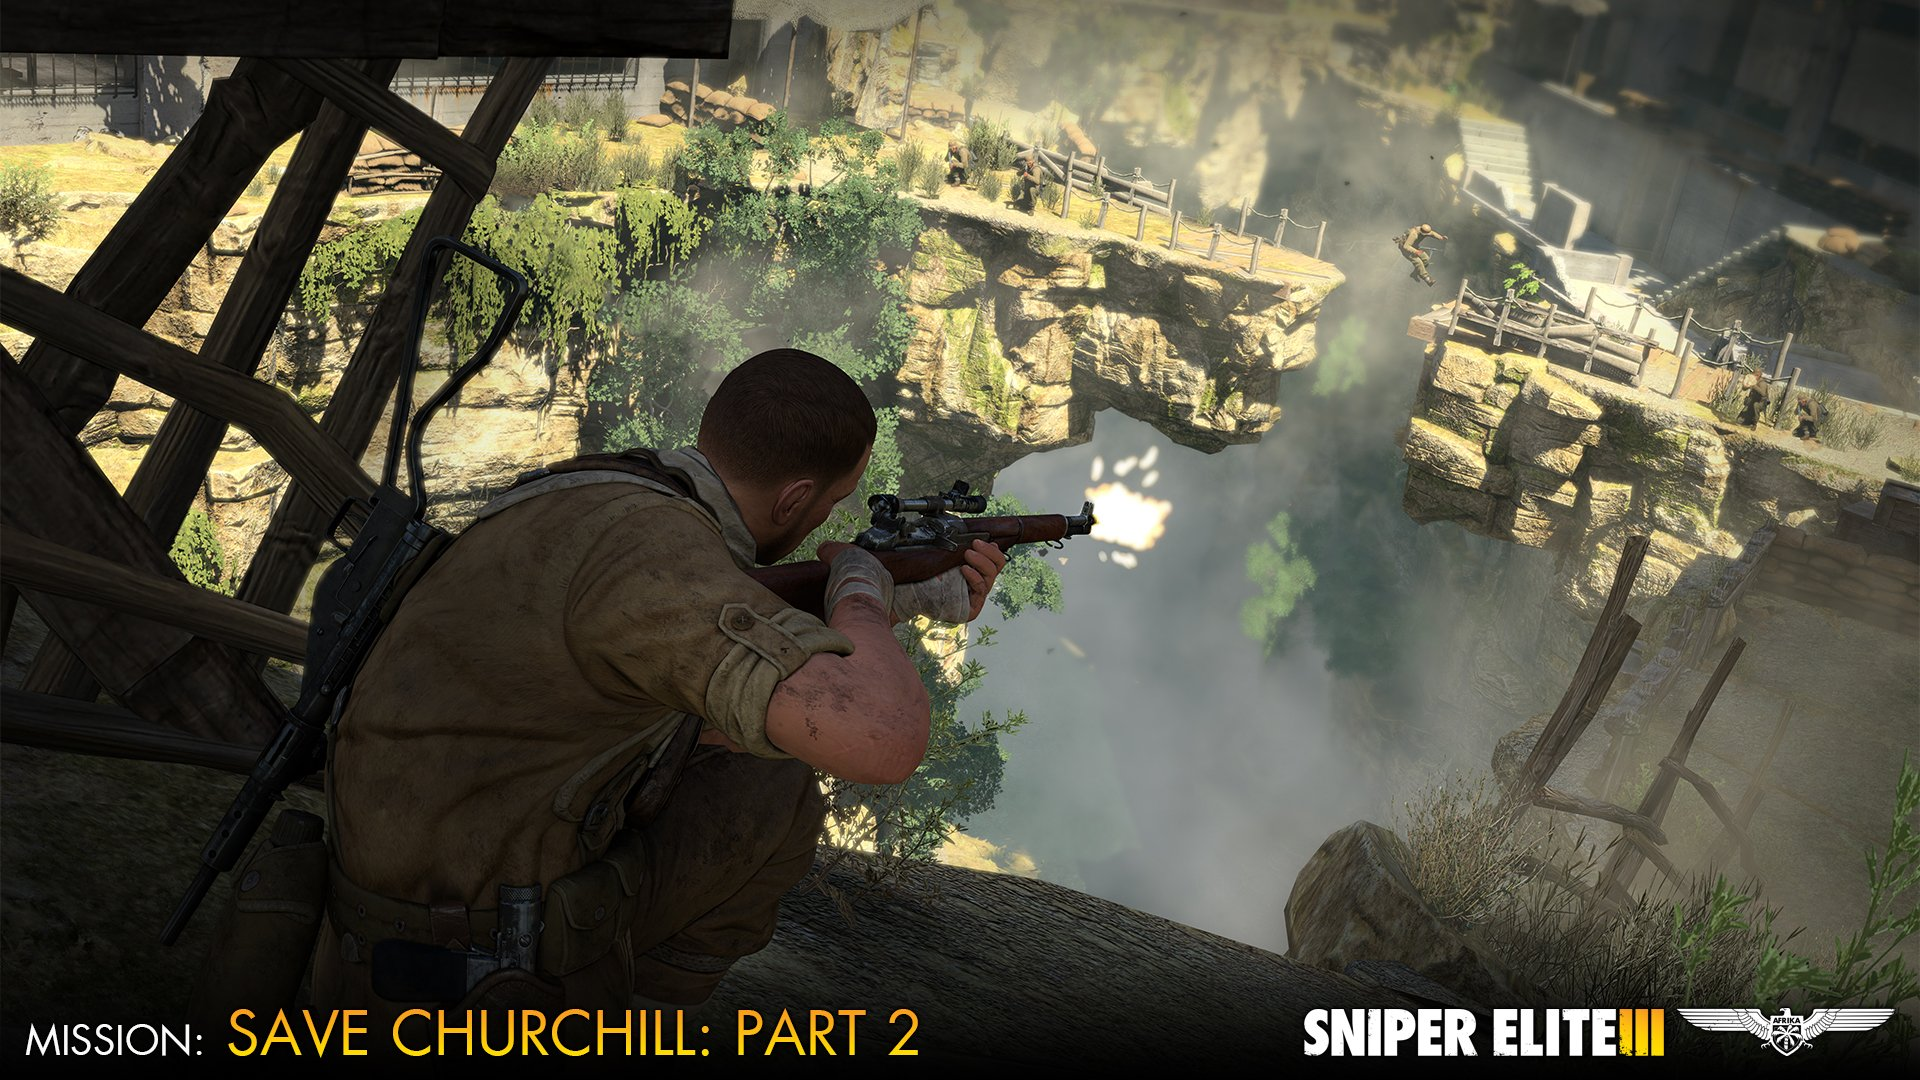 sniper elite 3 key activation download free